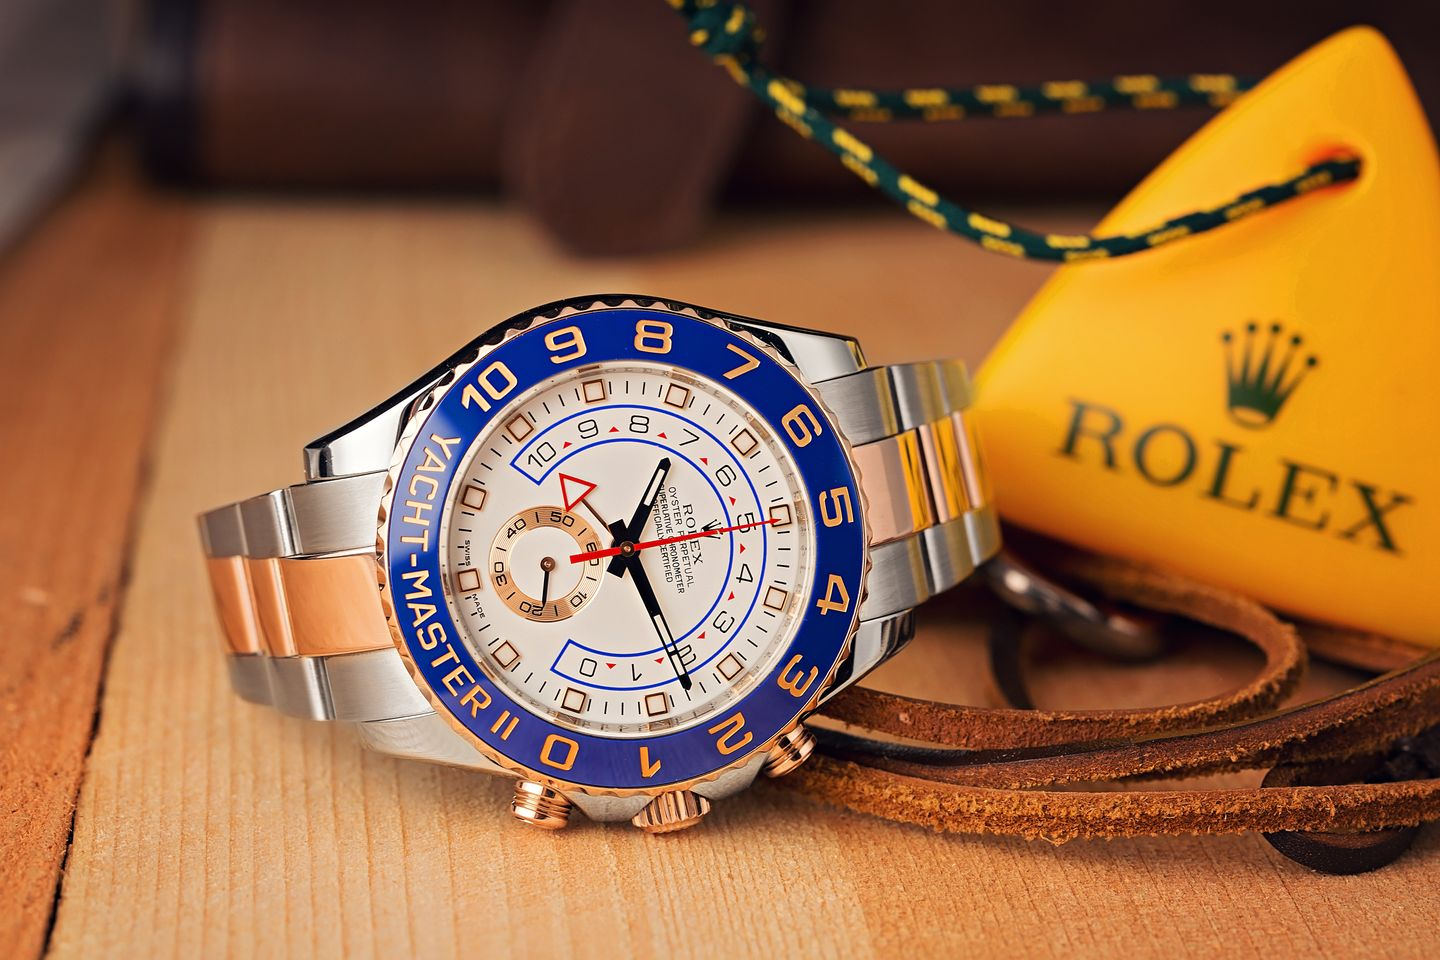 yachtmasterII 116681 5D3 2403 2 Edit - The Rolex Watch Personality Test